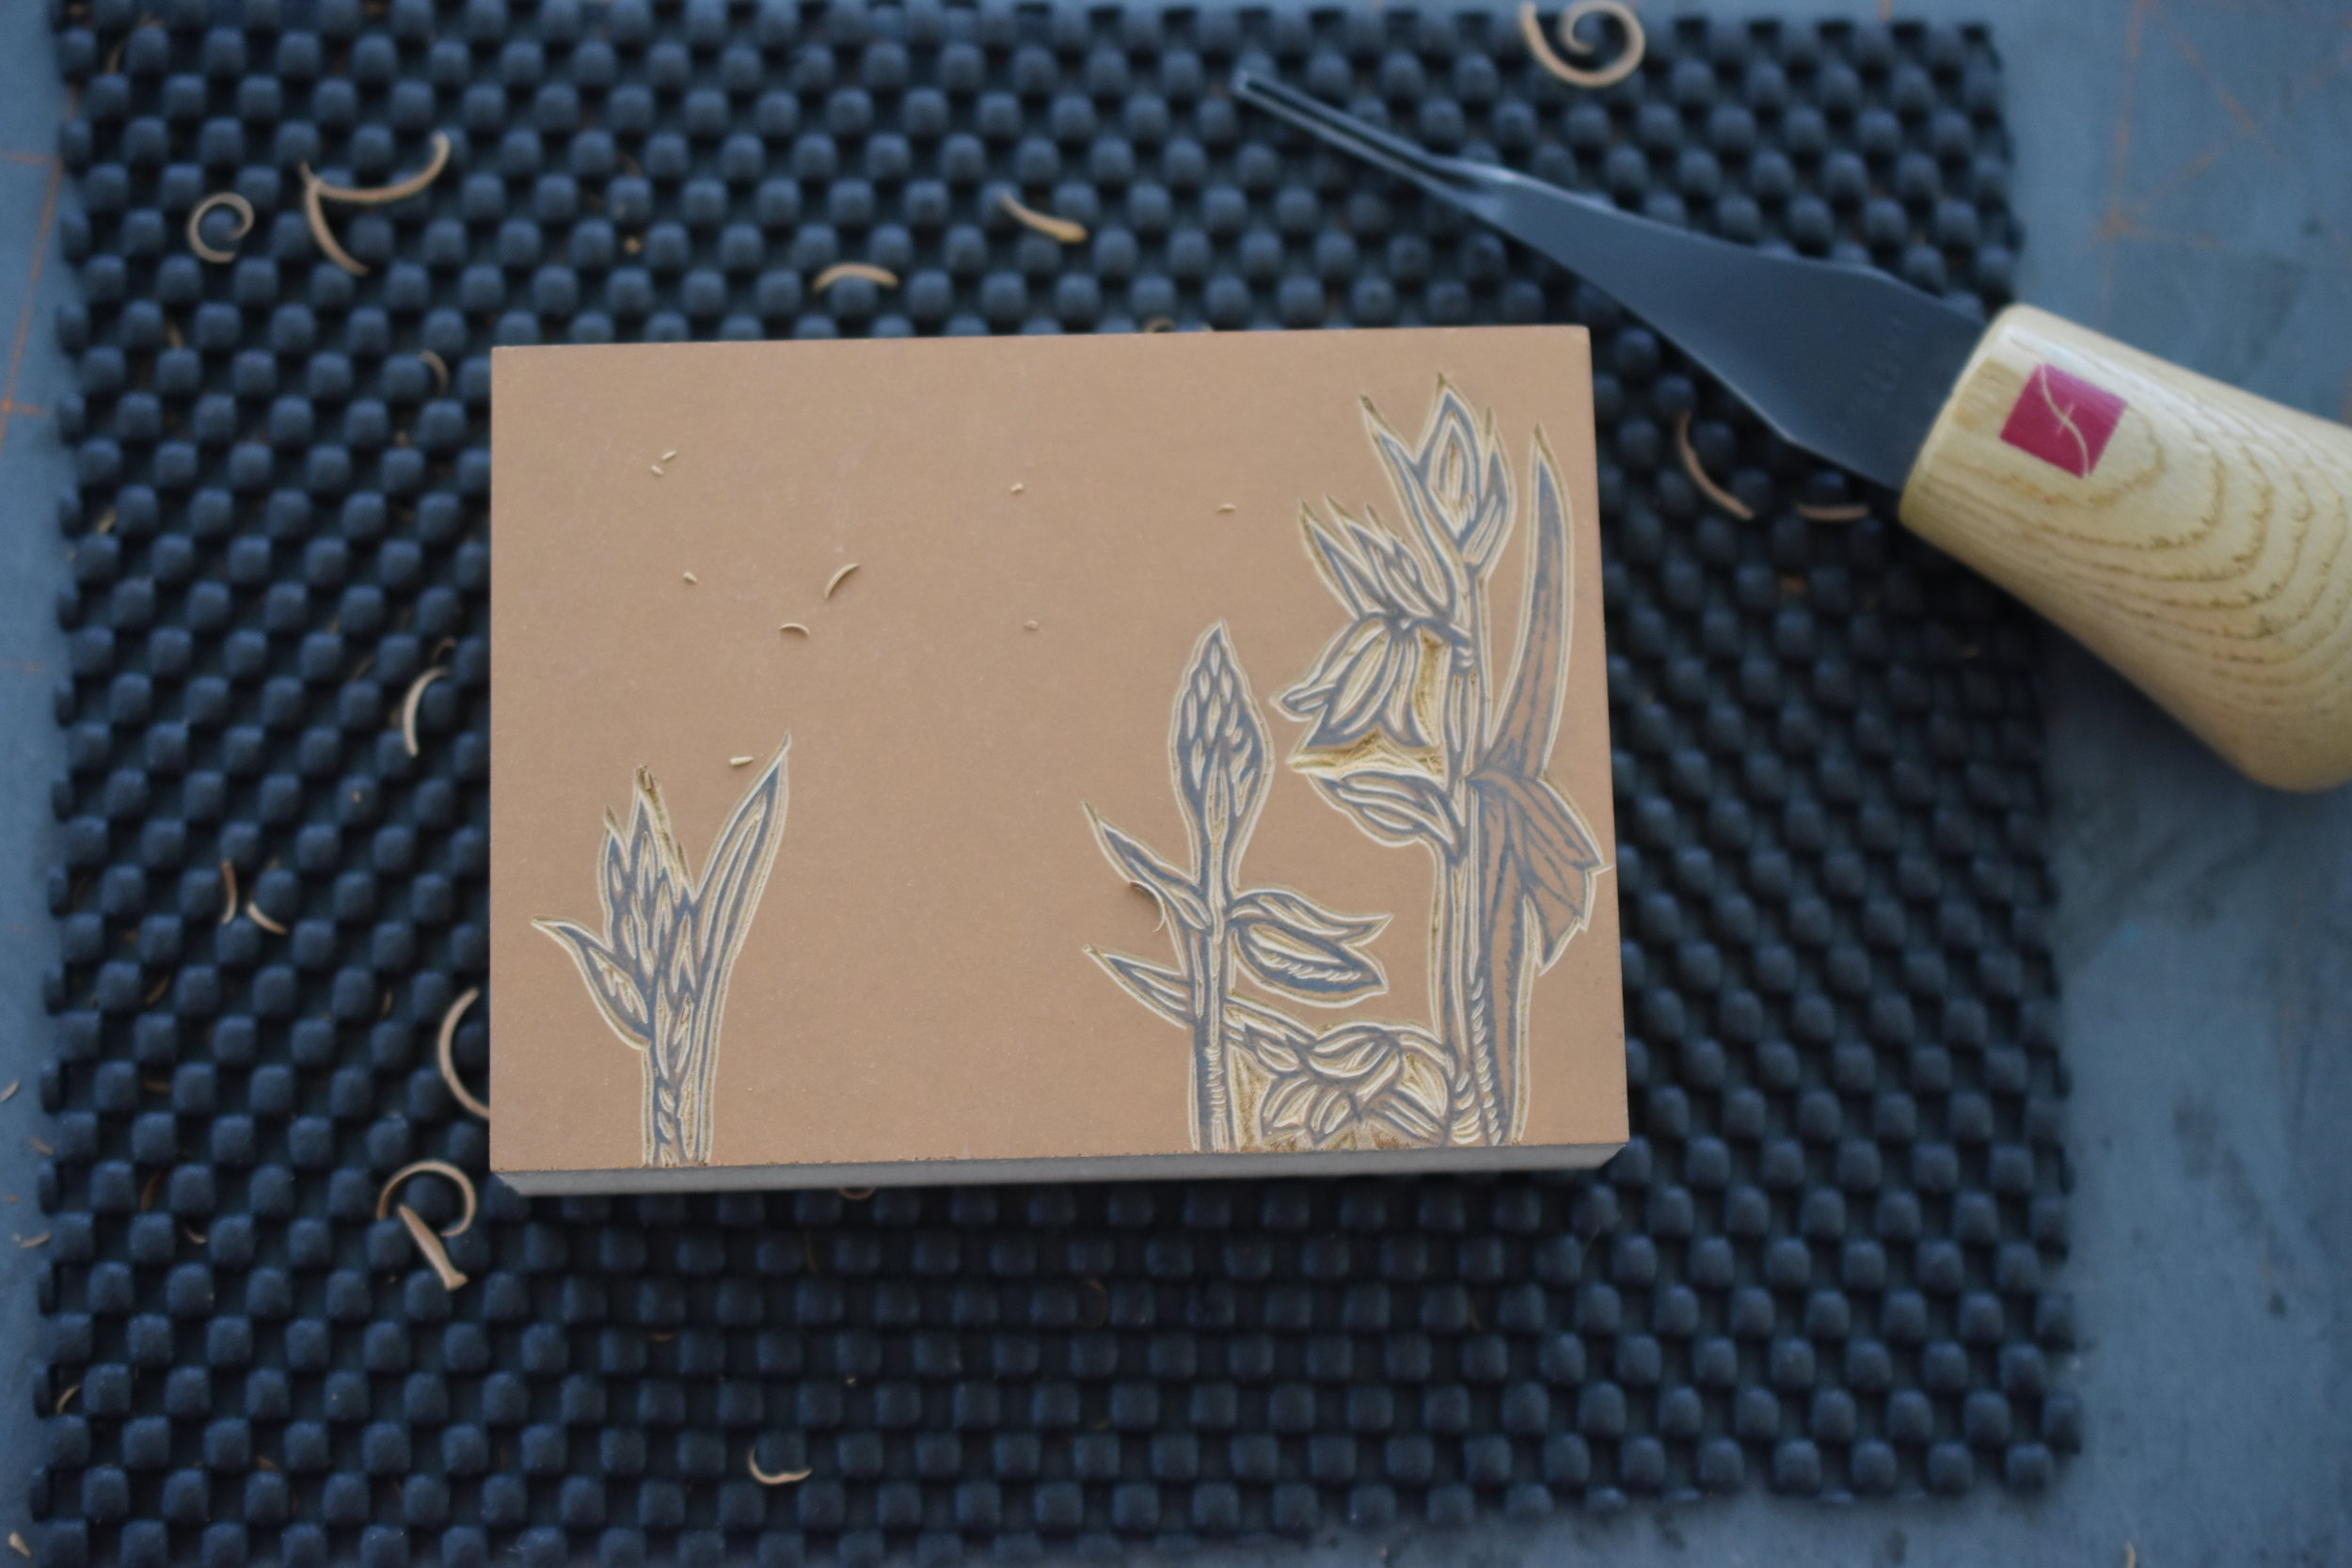 Carving the block - this will become a thank you card.